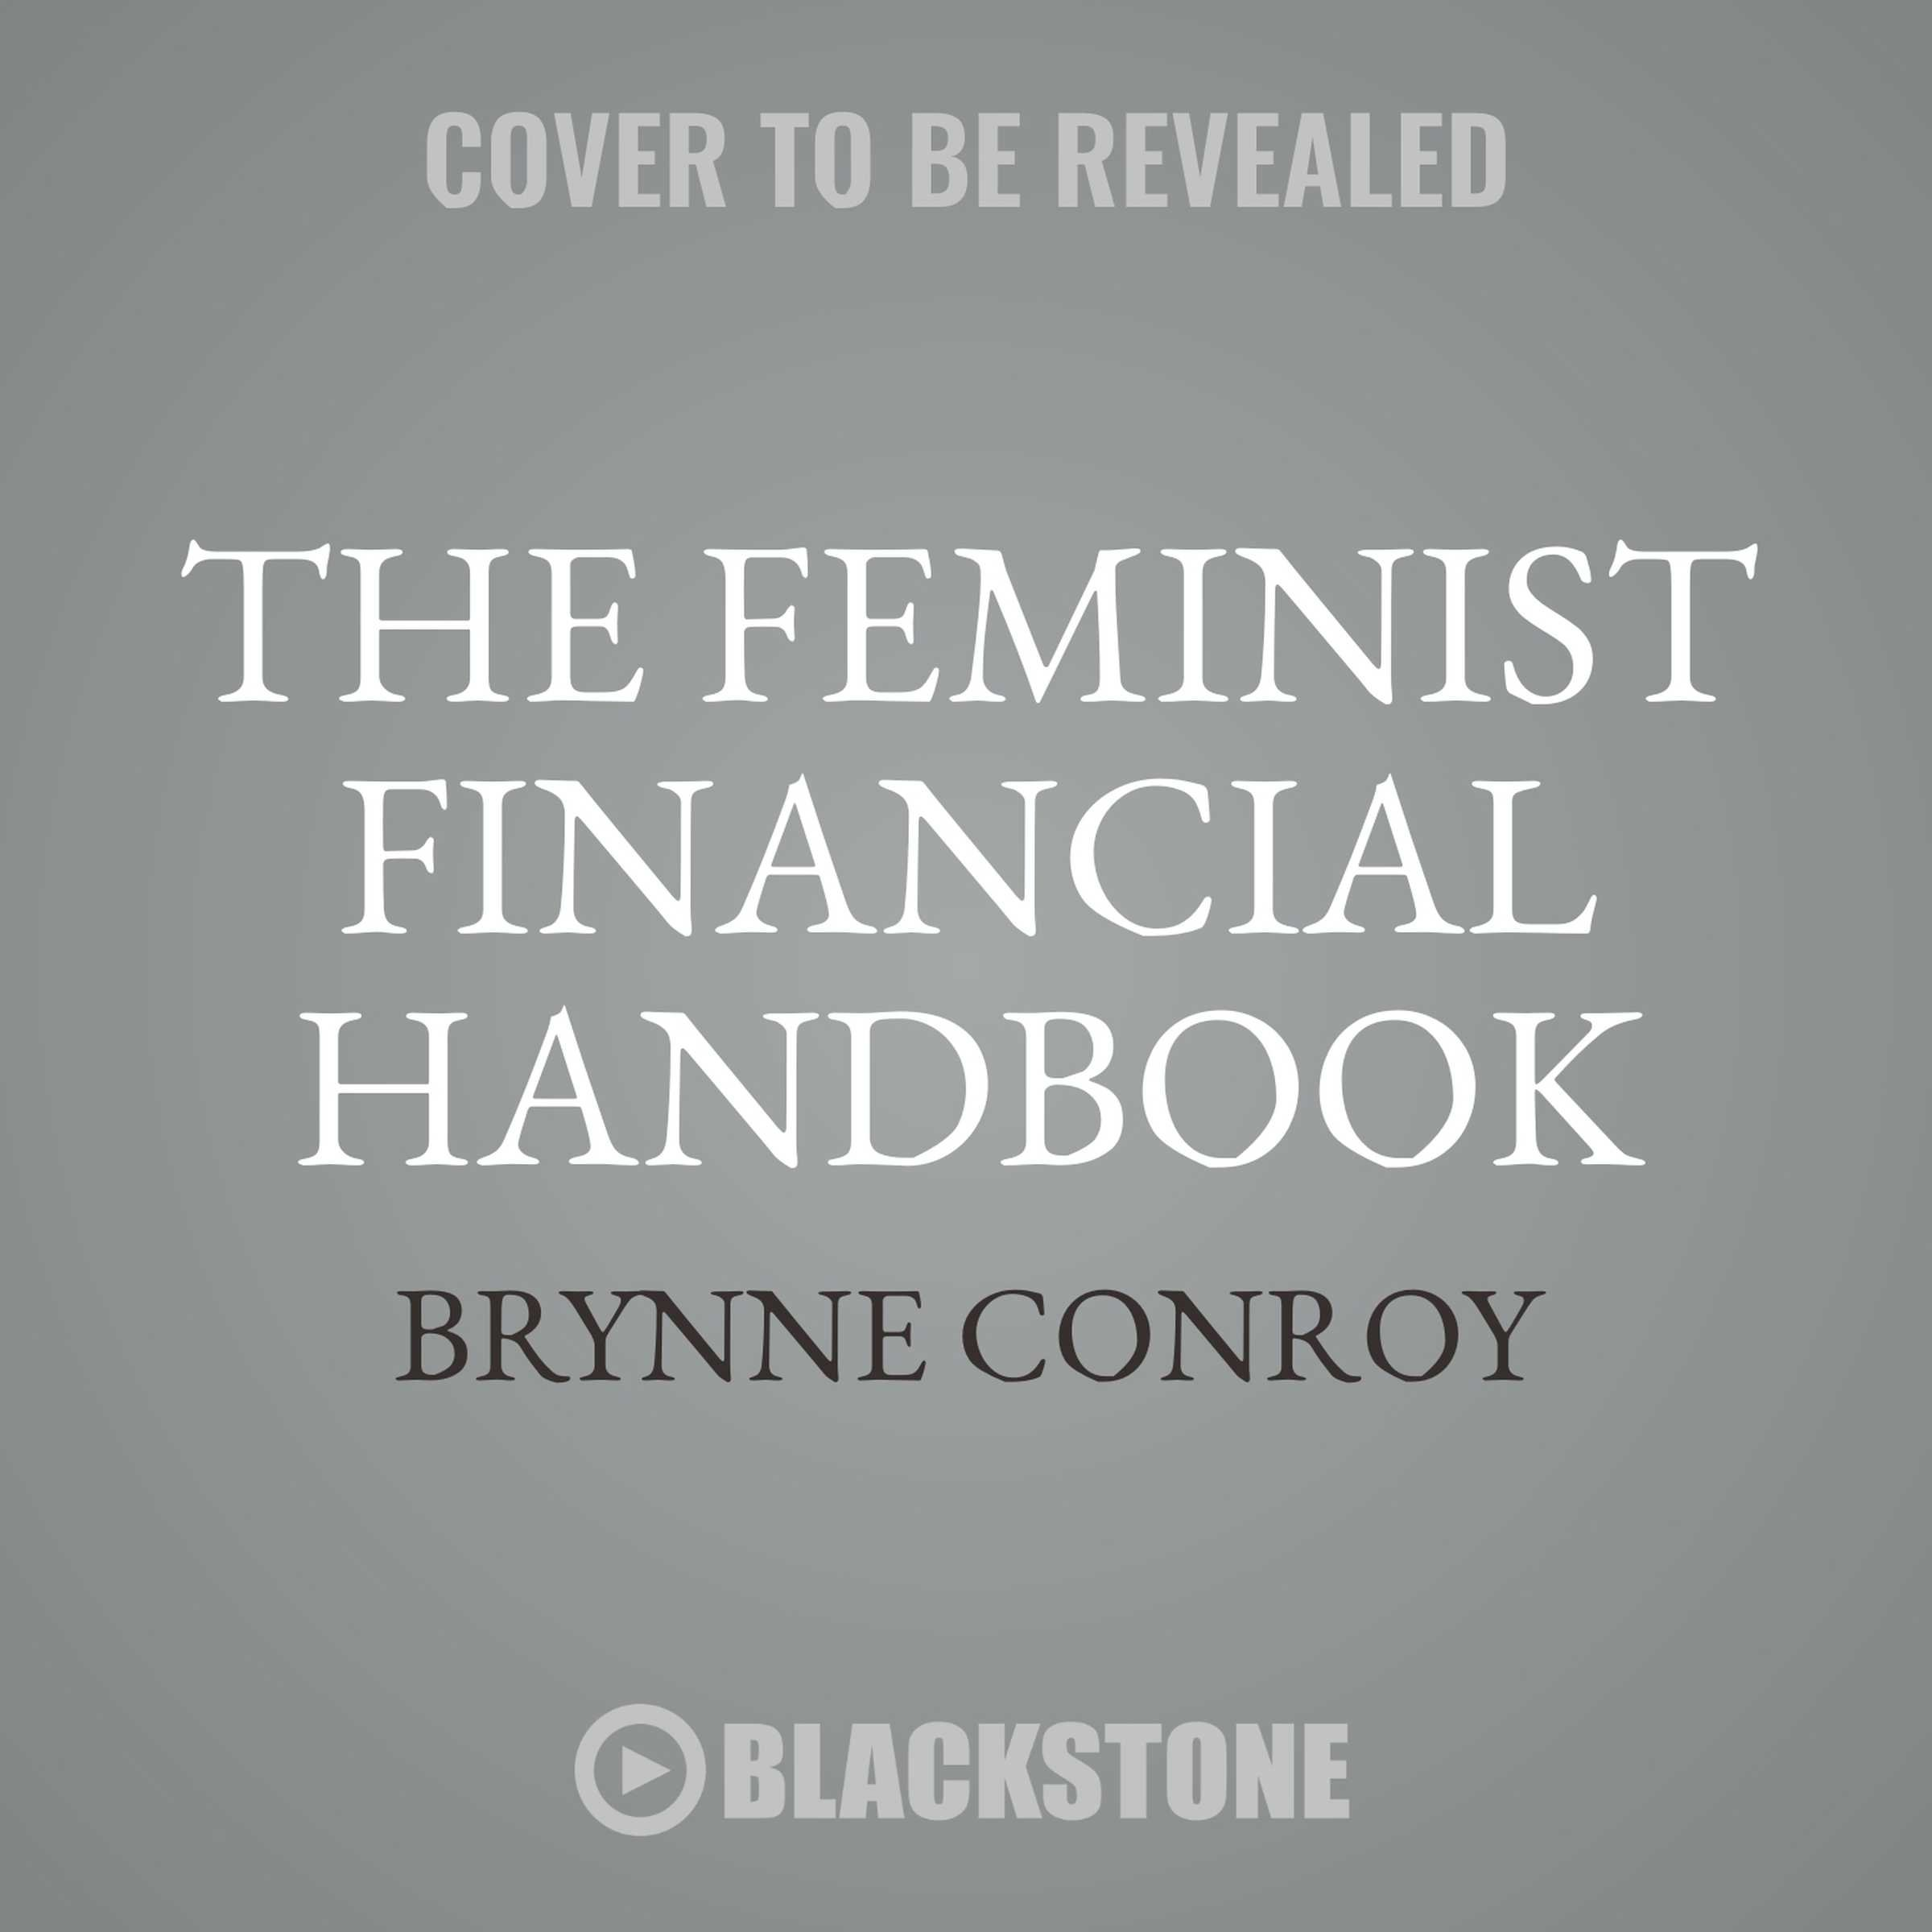 The Feminist Financial Handbook: A Modern Woman's Guide to a Wealthy Life